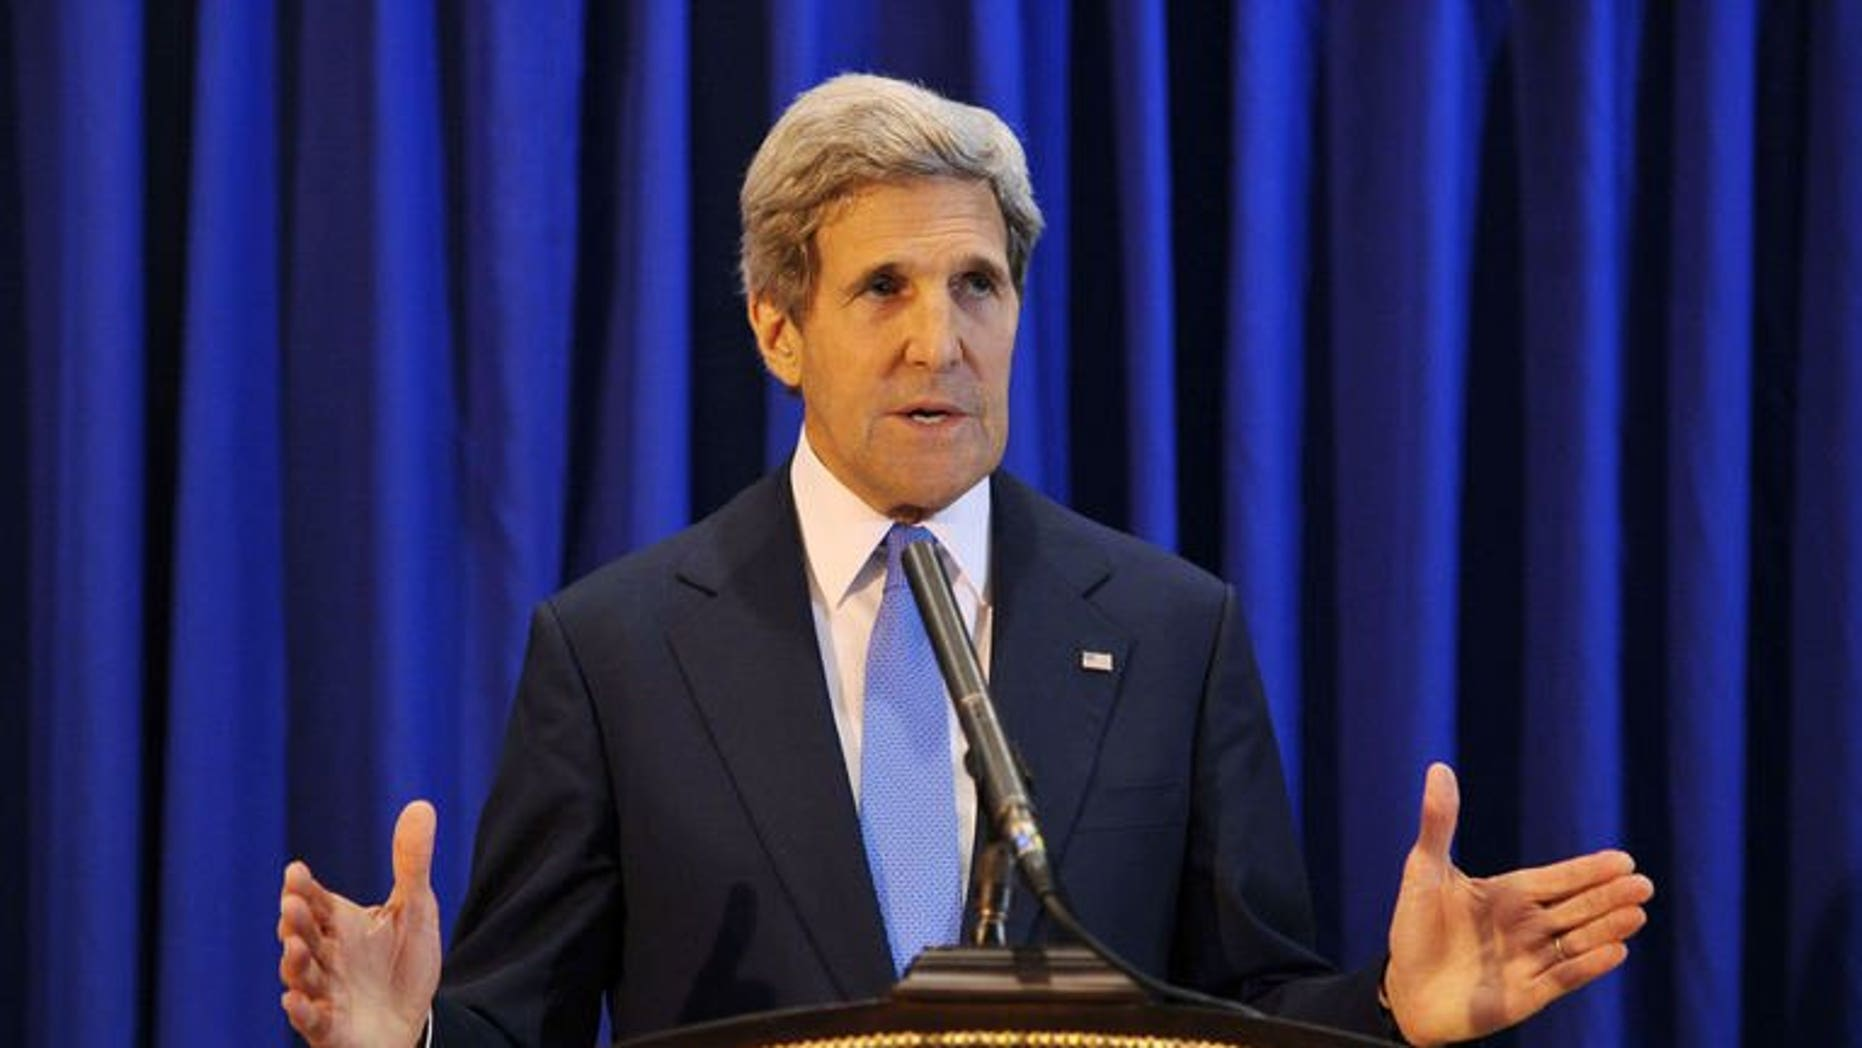 US Secretary of State John Kerry announced that an agreement has been reached between the Israelis and Palestinians for the basis to resume Middle East peace talks.